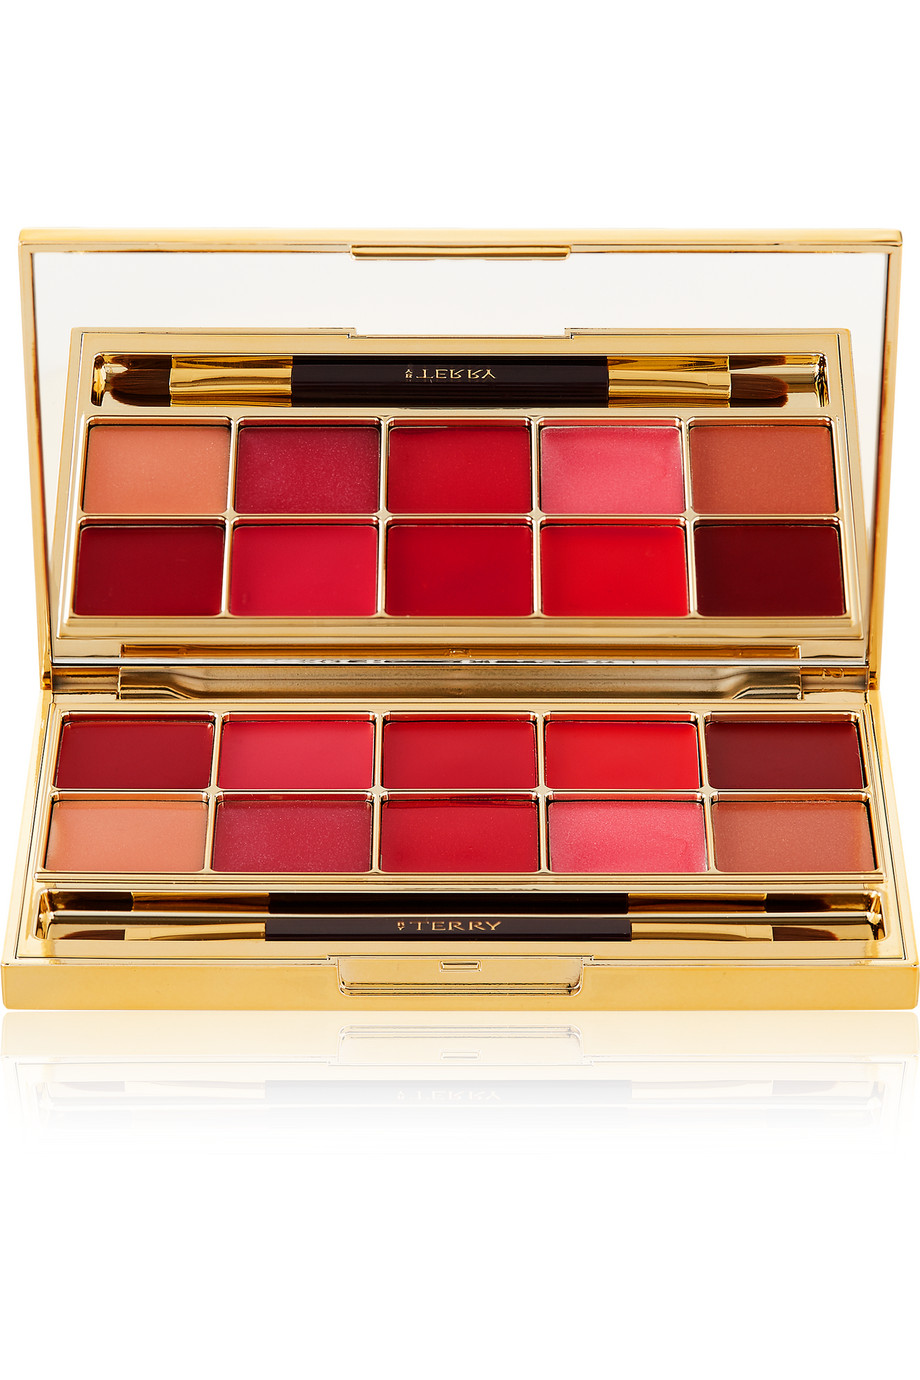 Gold - Jewel Lip Kiss Palette, by By Terry